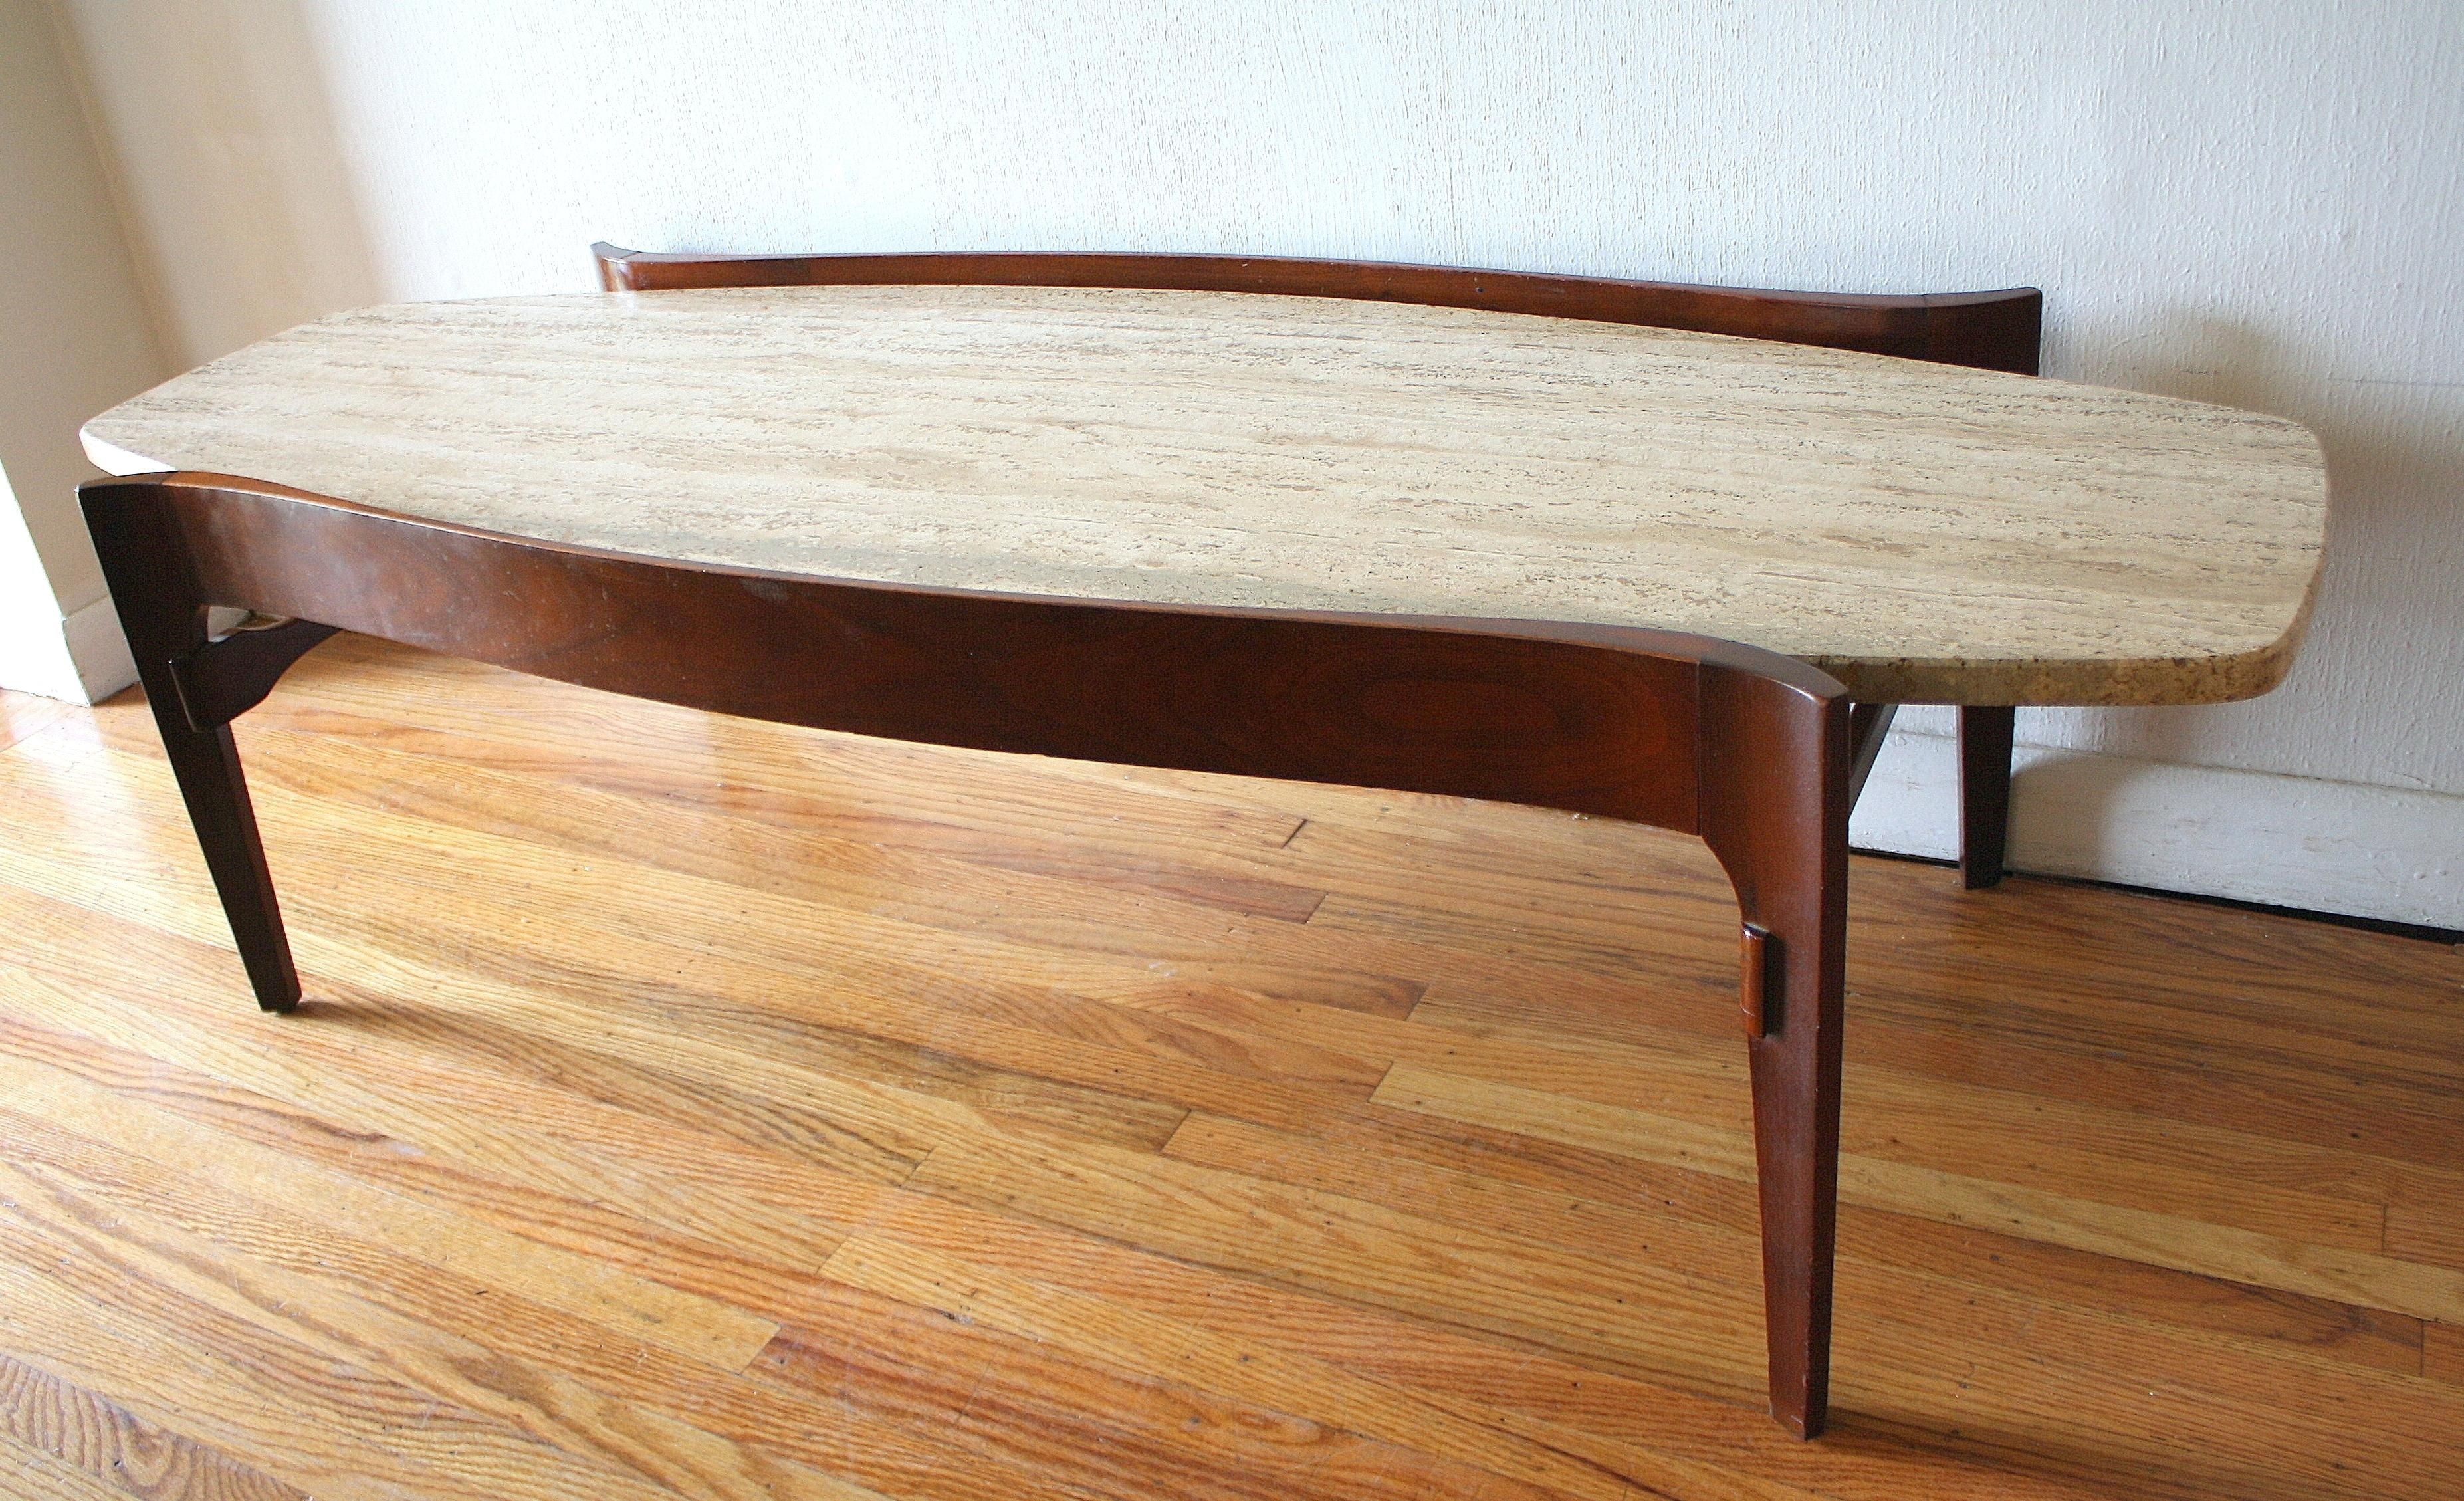 Heywood Wakefield Coffee Table with Surfboard Edges This is a